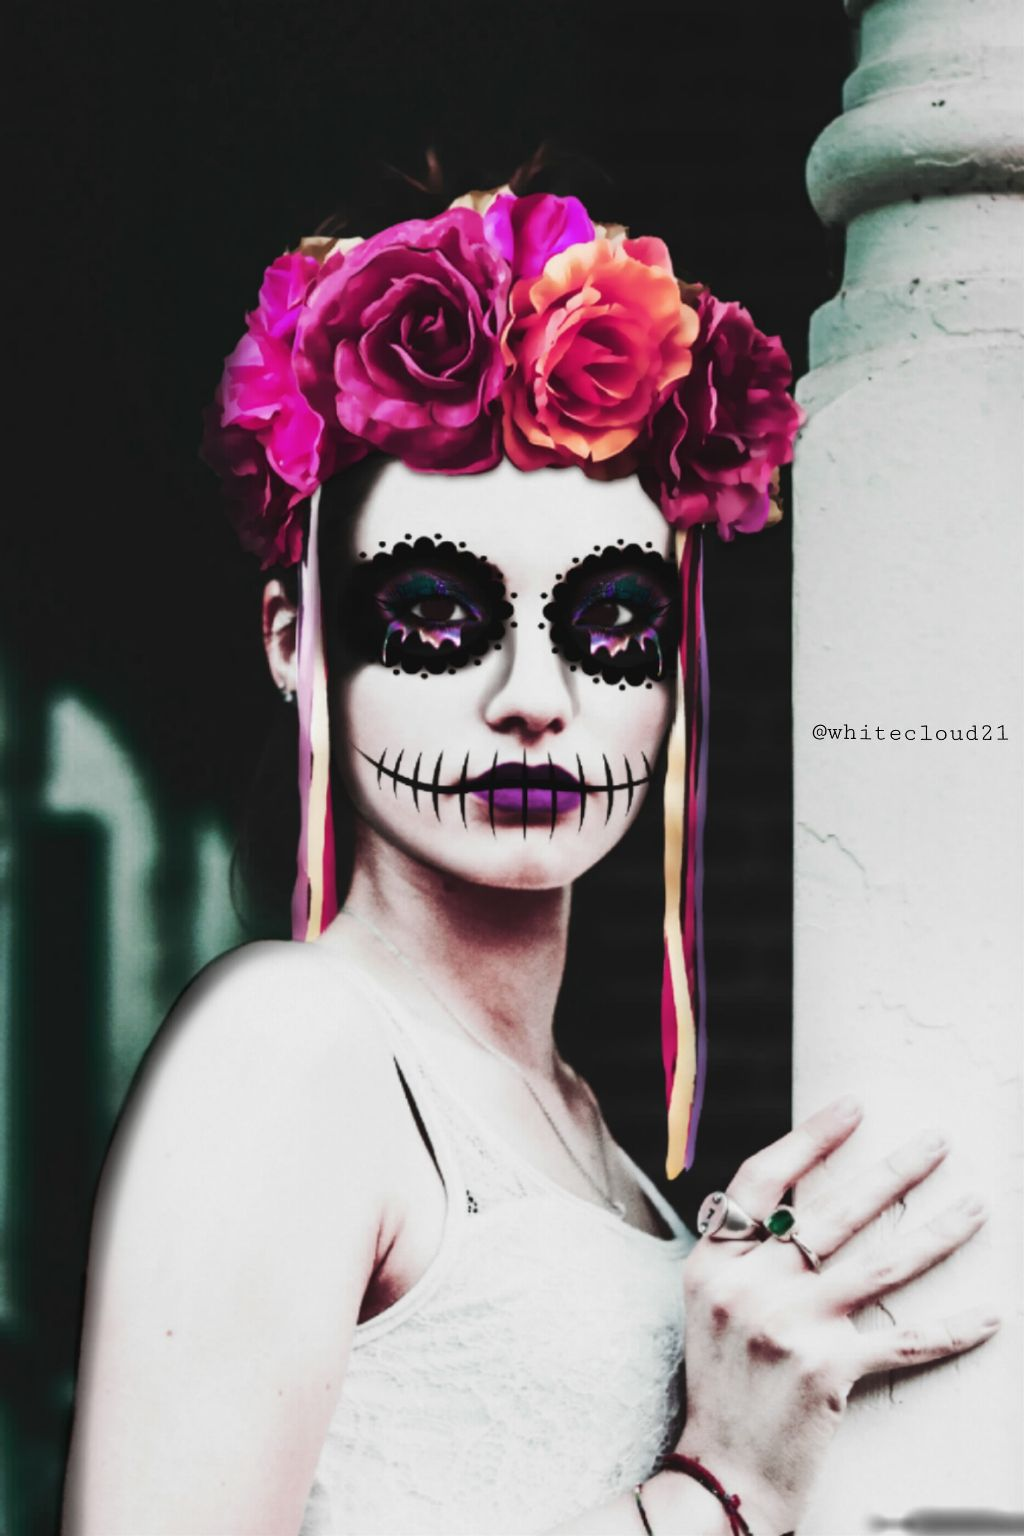 #dayofthedead #myedit #halloween #girl #madewithpicsart #madebyme